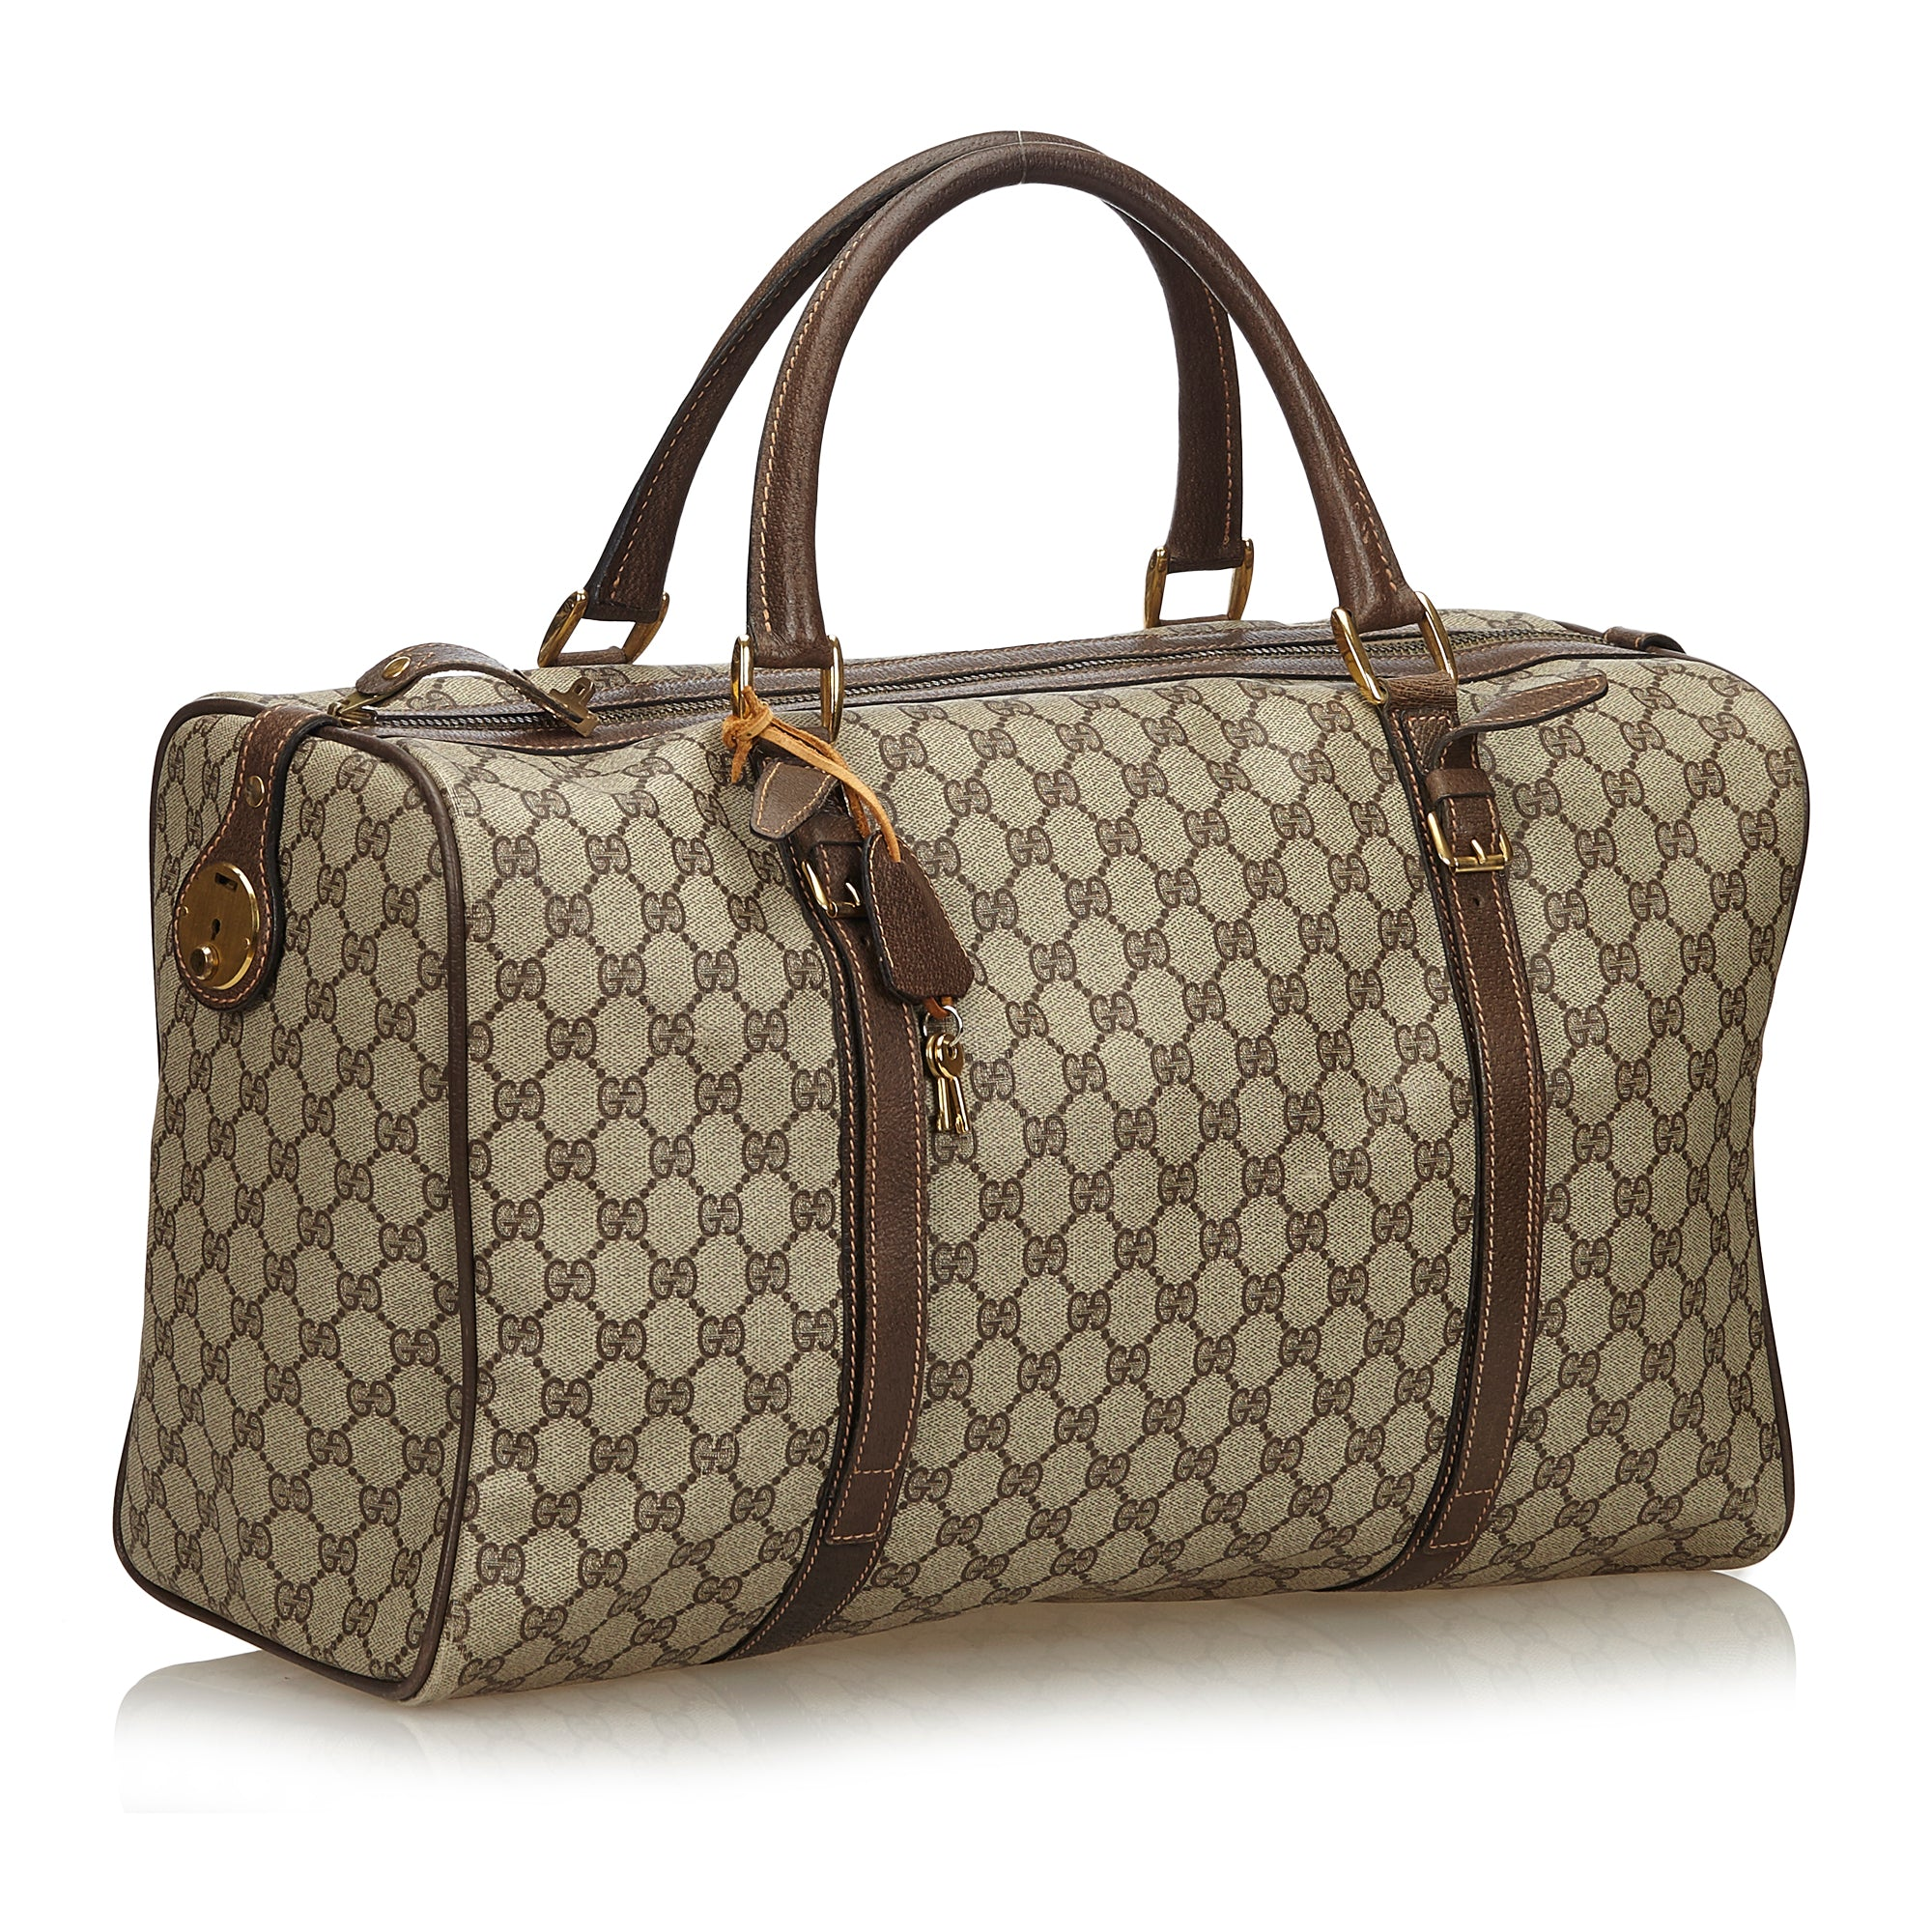 0c7e390193bf ... GUCCI GG SUPREME WEEKENDER DUFFLE CARRY ON BAG Shop the best value on  authentic designer used ...